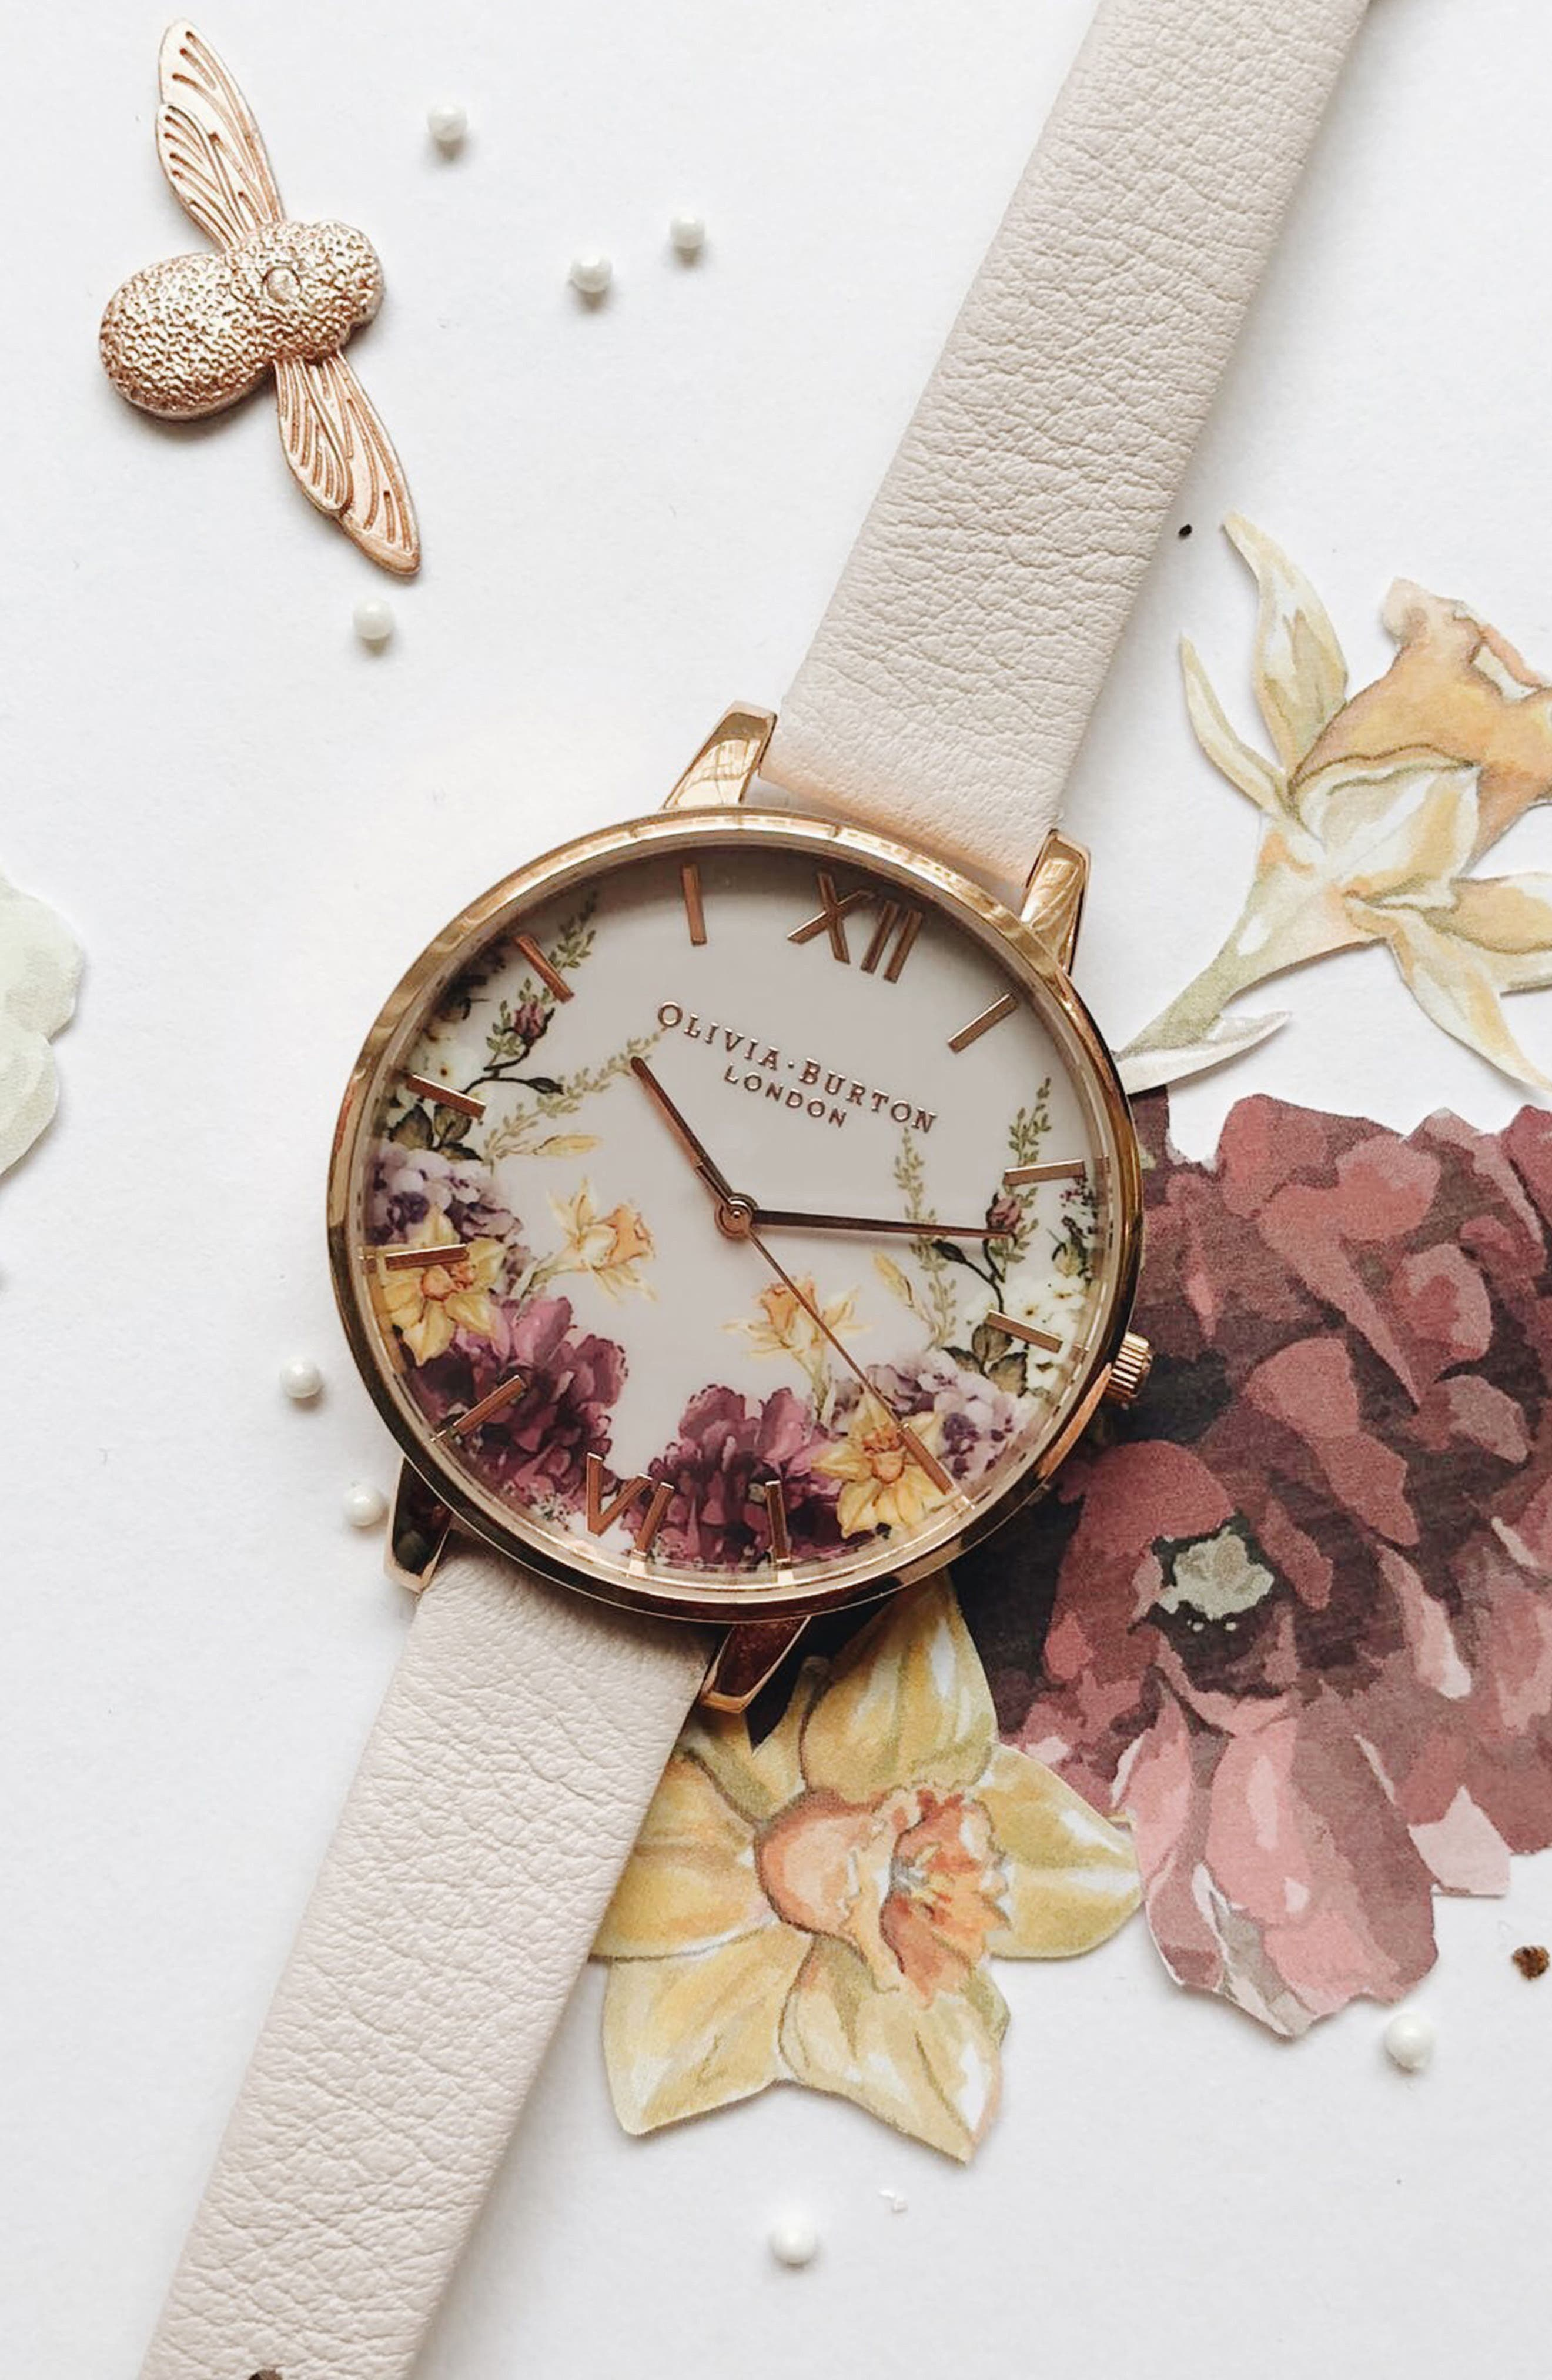 Enchanted Garden Leather Strap Watch, 38mm,                             Alternate thumbnail 8, color,                             BLOSSOM/ PINK/ ROSE GOLD